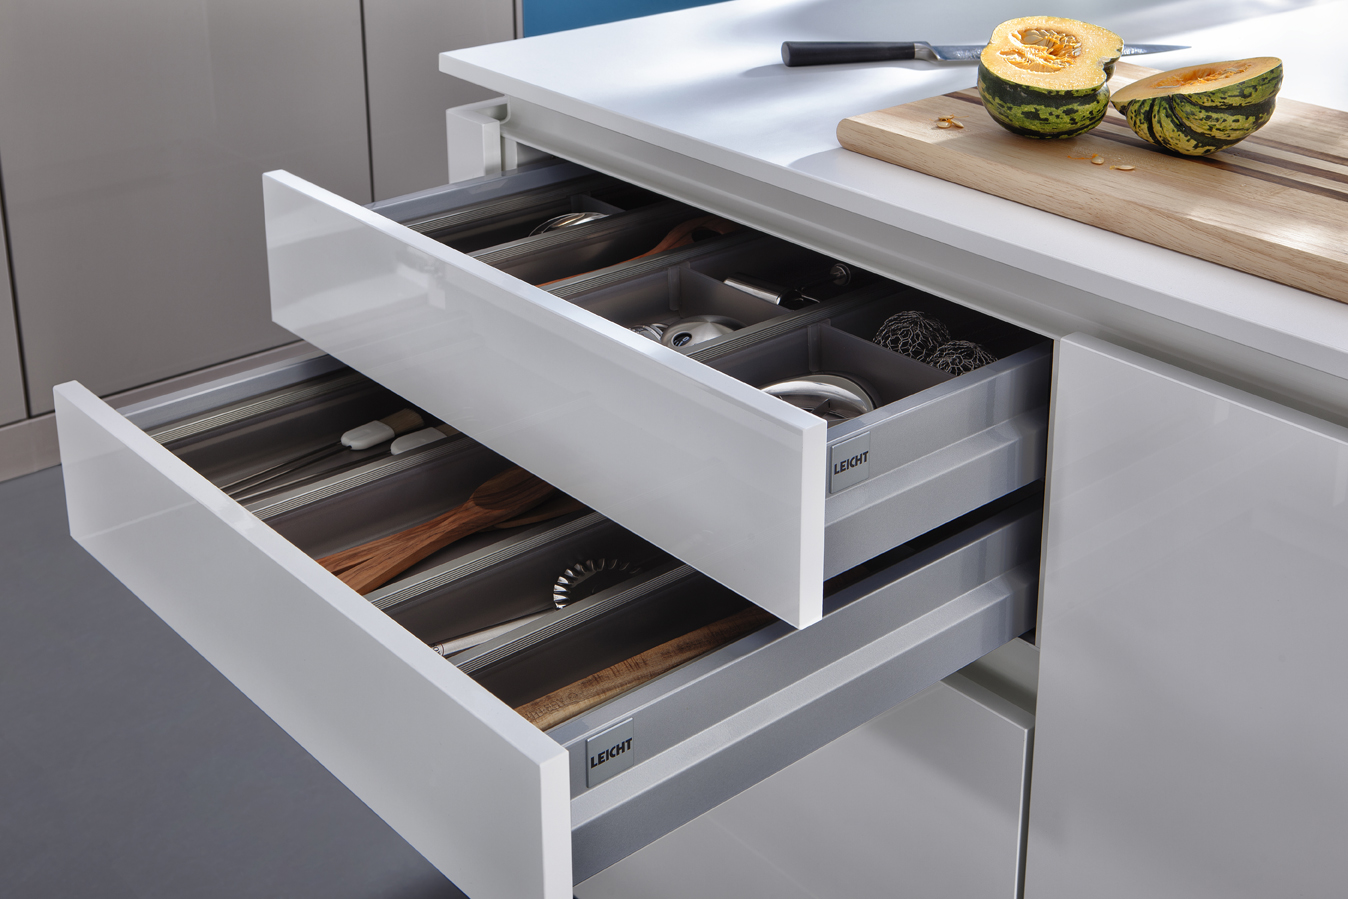 Ikea Schubladenteiler Küche Contino The New Standard In Handle Less Kitchen Cabinets